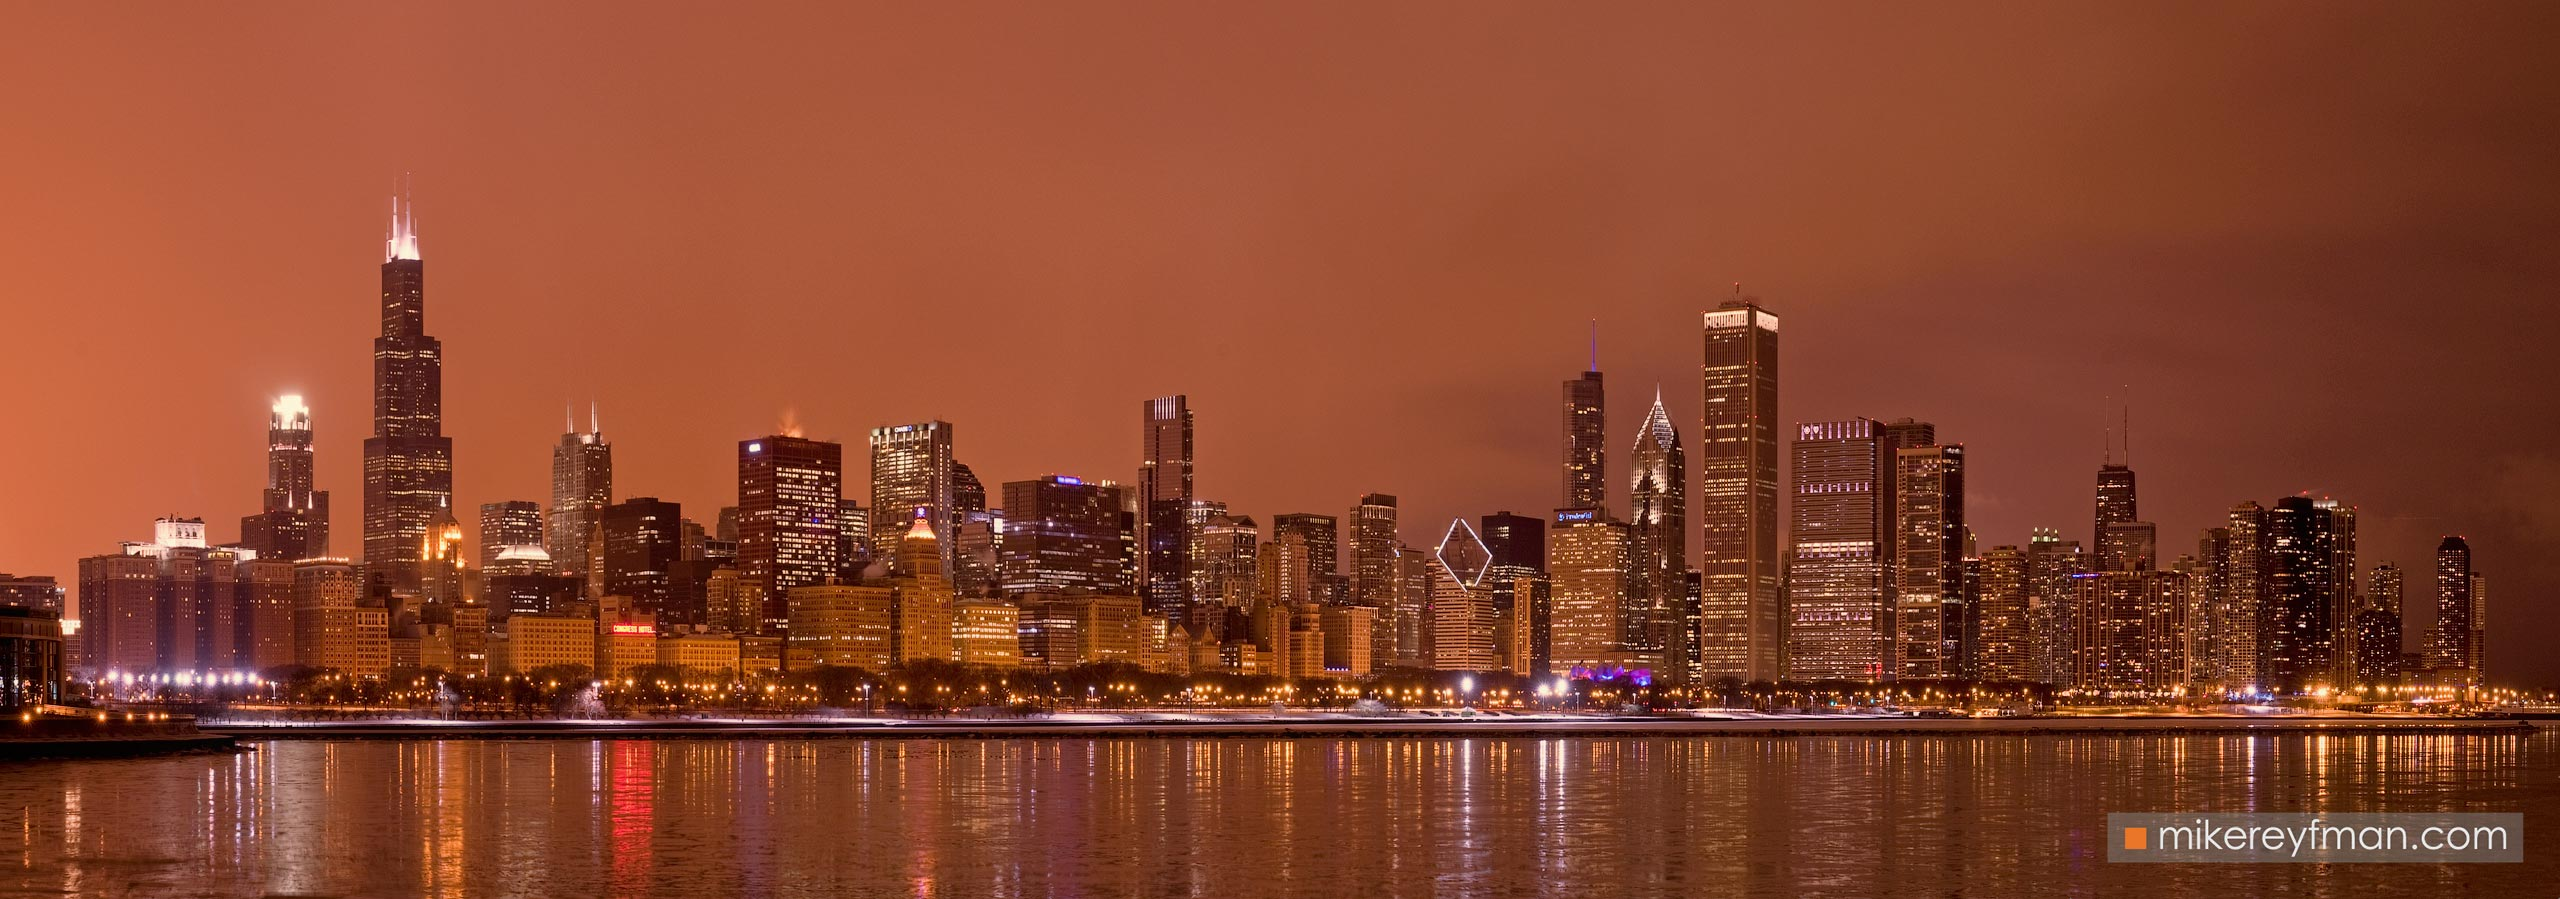 City at Night. Chicago, Illinois, USA. 105-CH1-O3X8715-19_Pano_1x3 - Chicago, USA: The